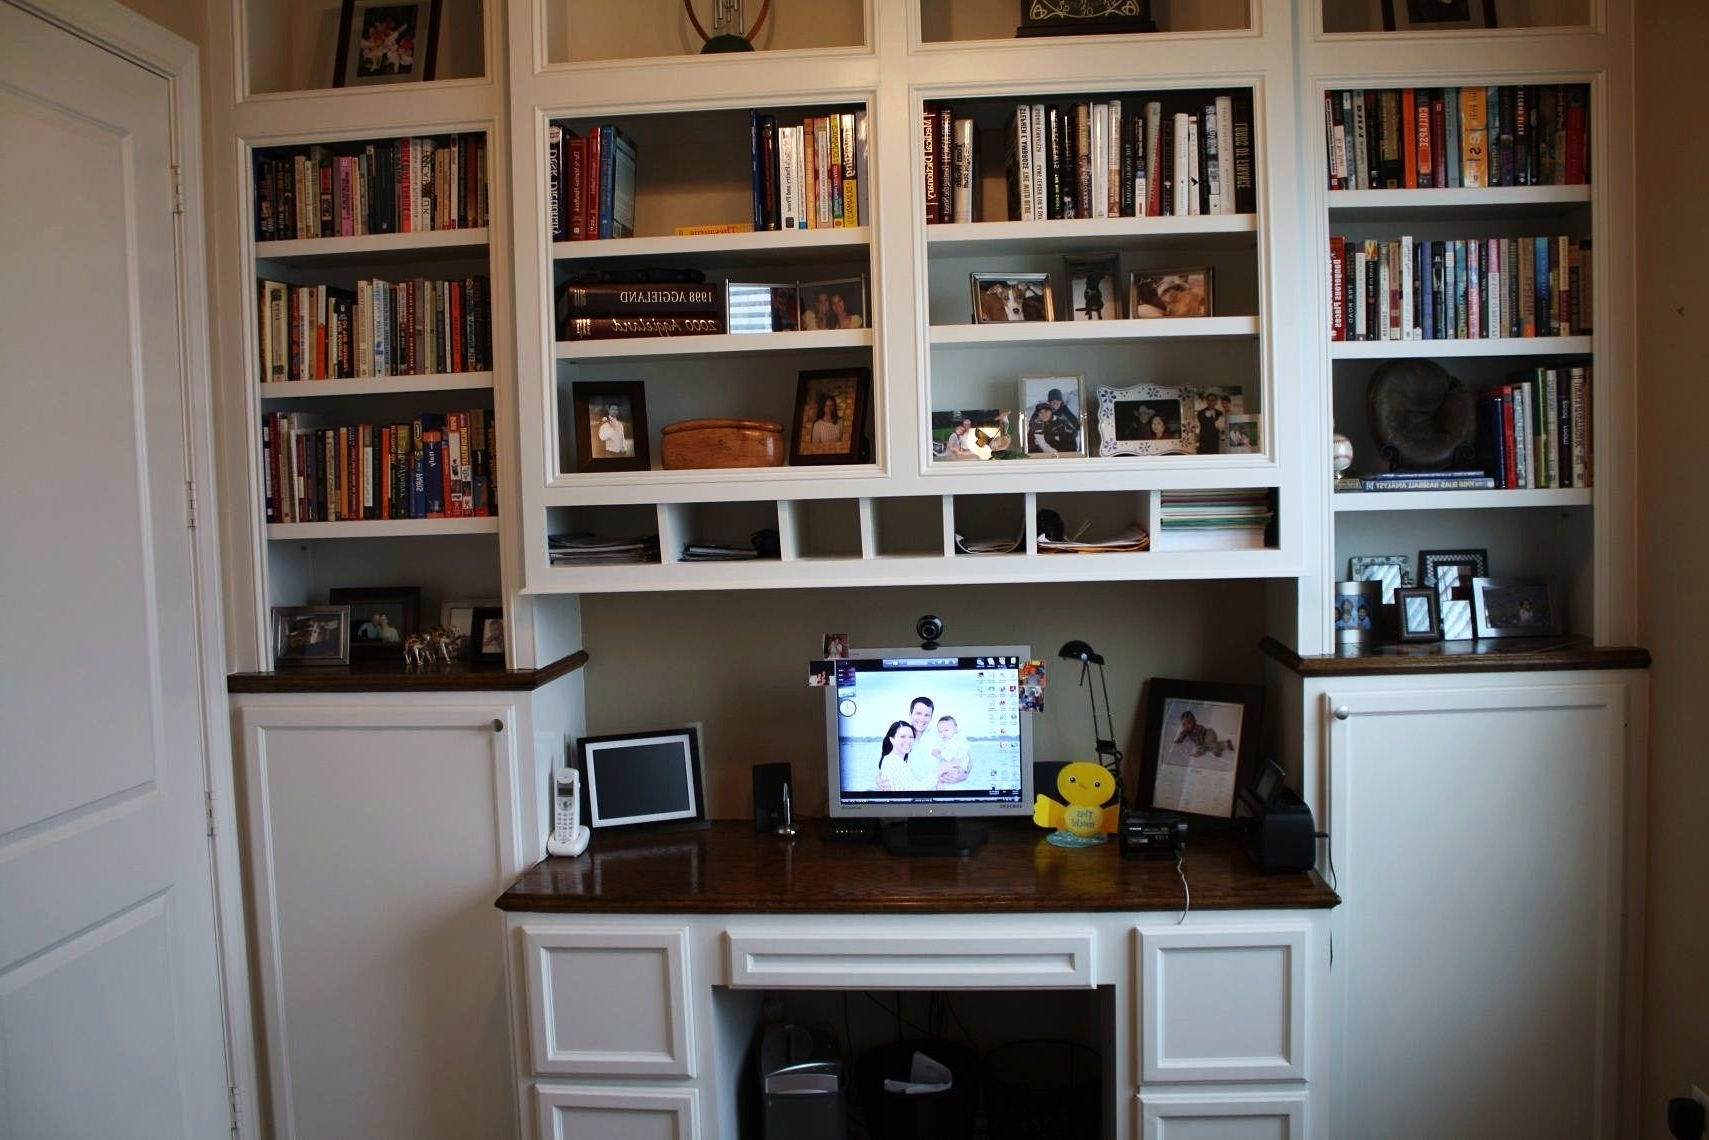 Custom Made Built In Desk & Bookcasescustom Cabinets & Trim With Widely Used Desk With Matching Bookcases (View 15 of 15)